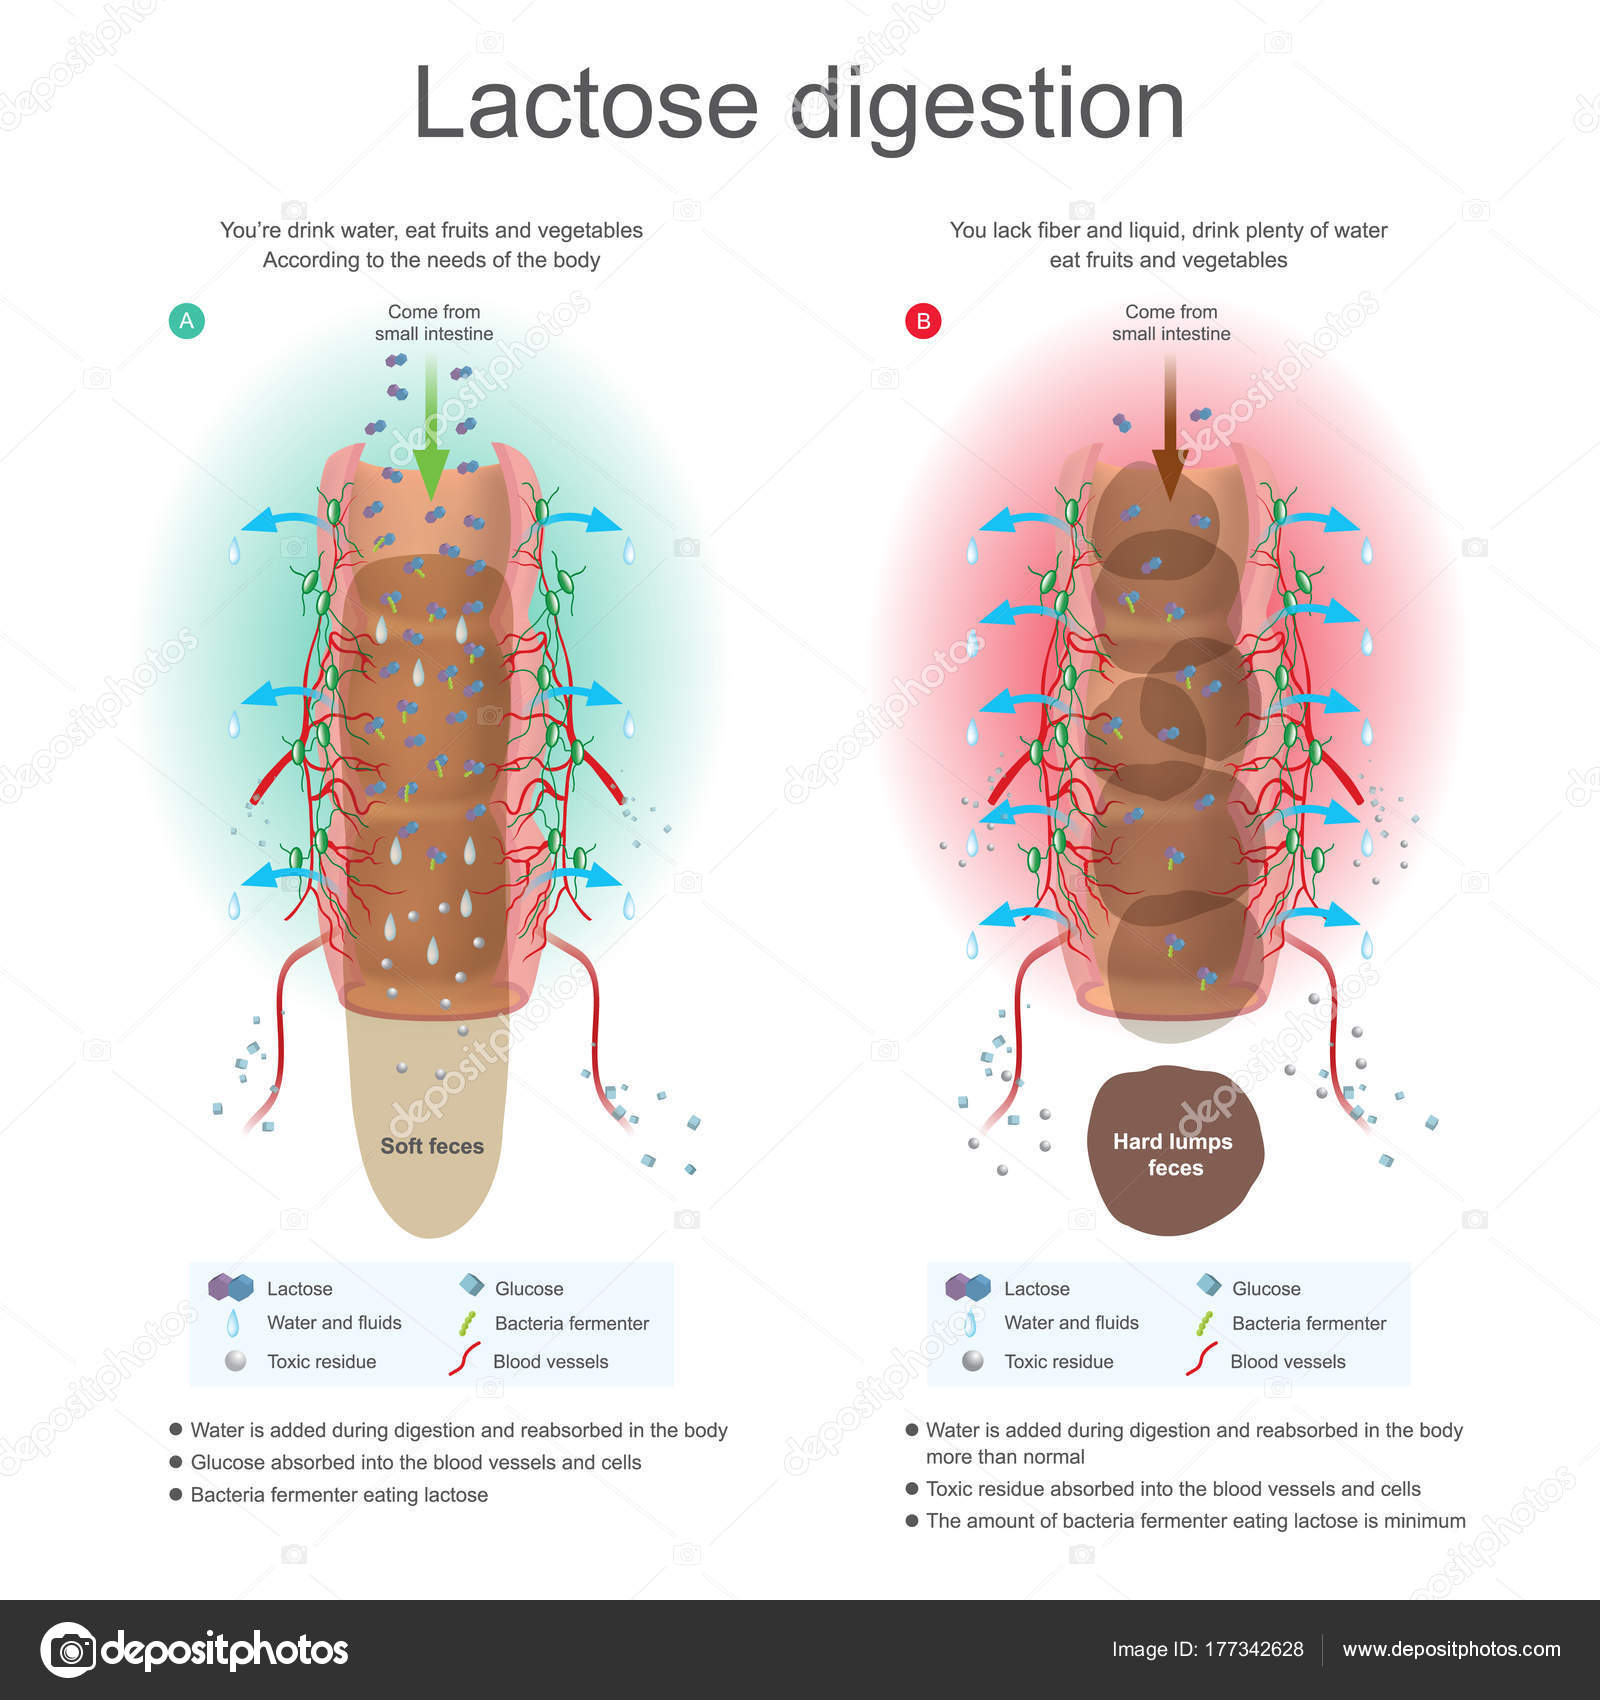 Lactose digestion. Water is added during digestion and reabsorb in ...